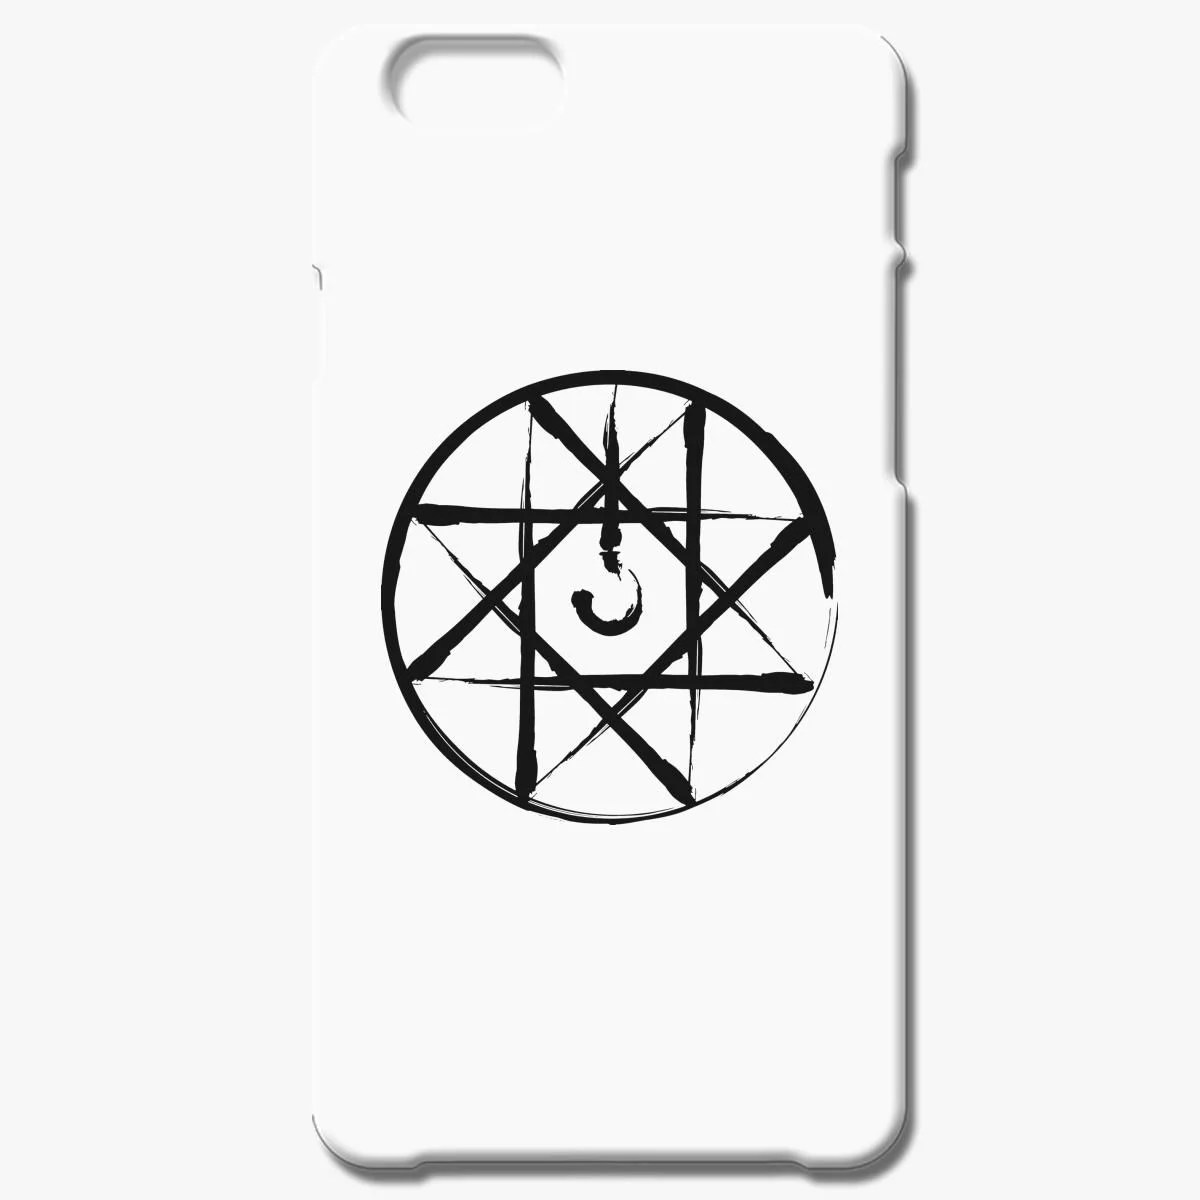 Fullmetal Alchemist Symbol Iphone 8 Plus Case